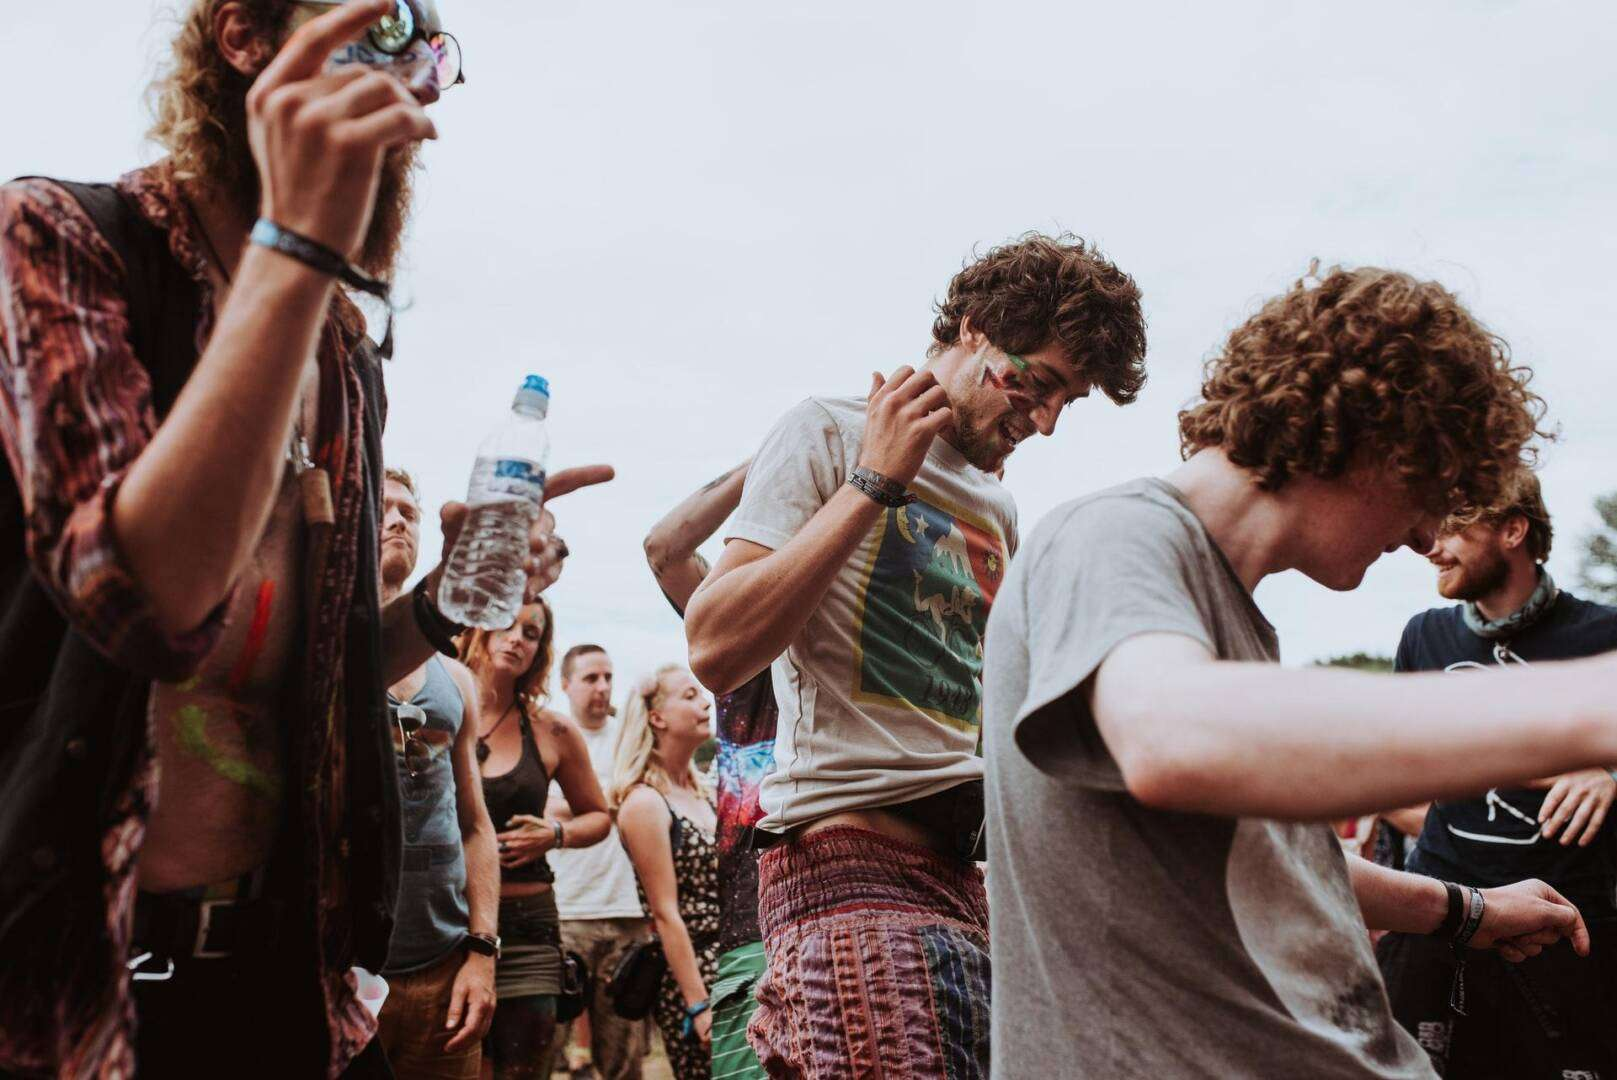 Music festival in USA claims mass-gatherings ban unconstitutional